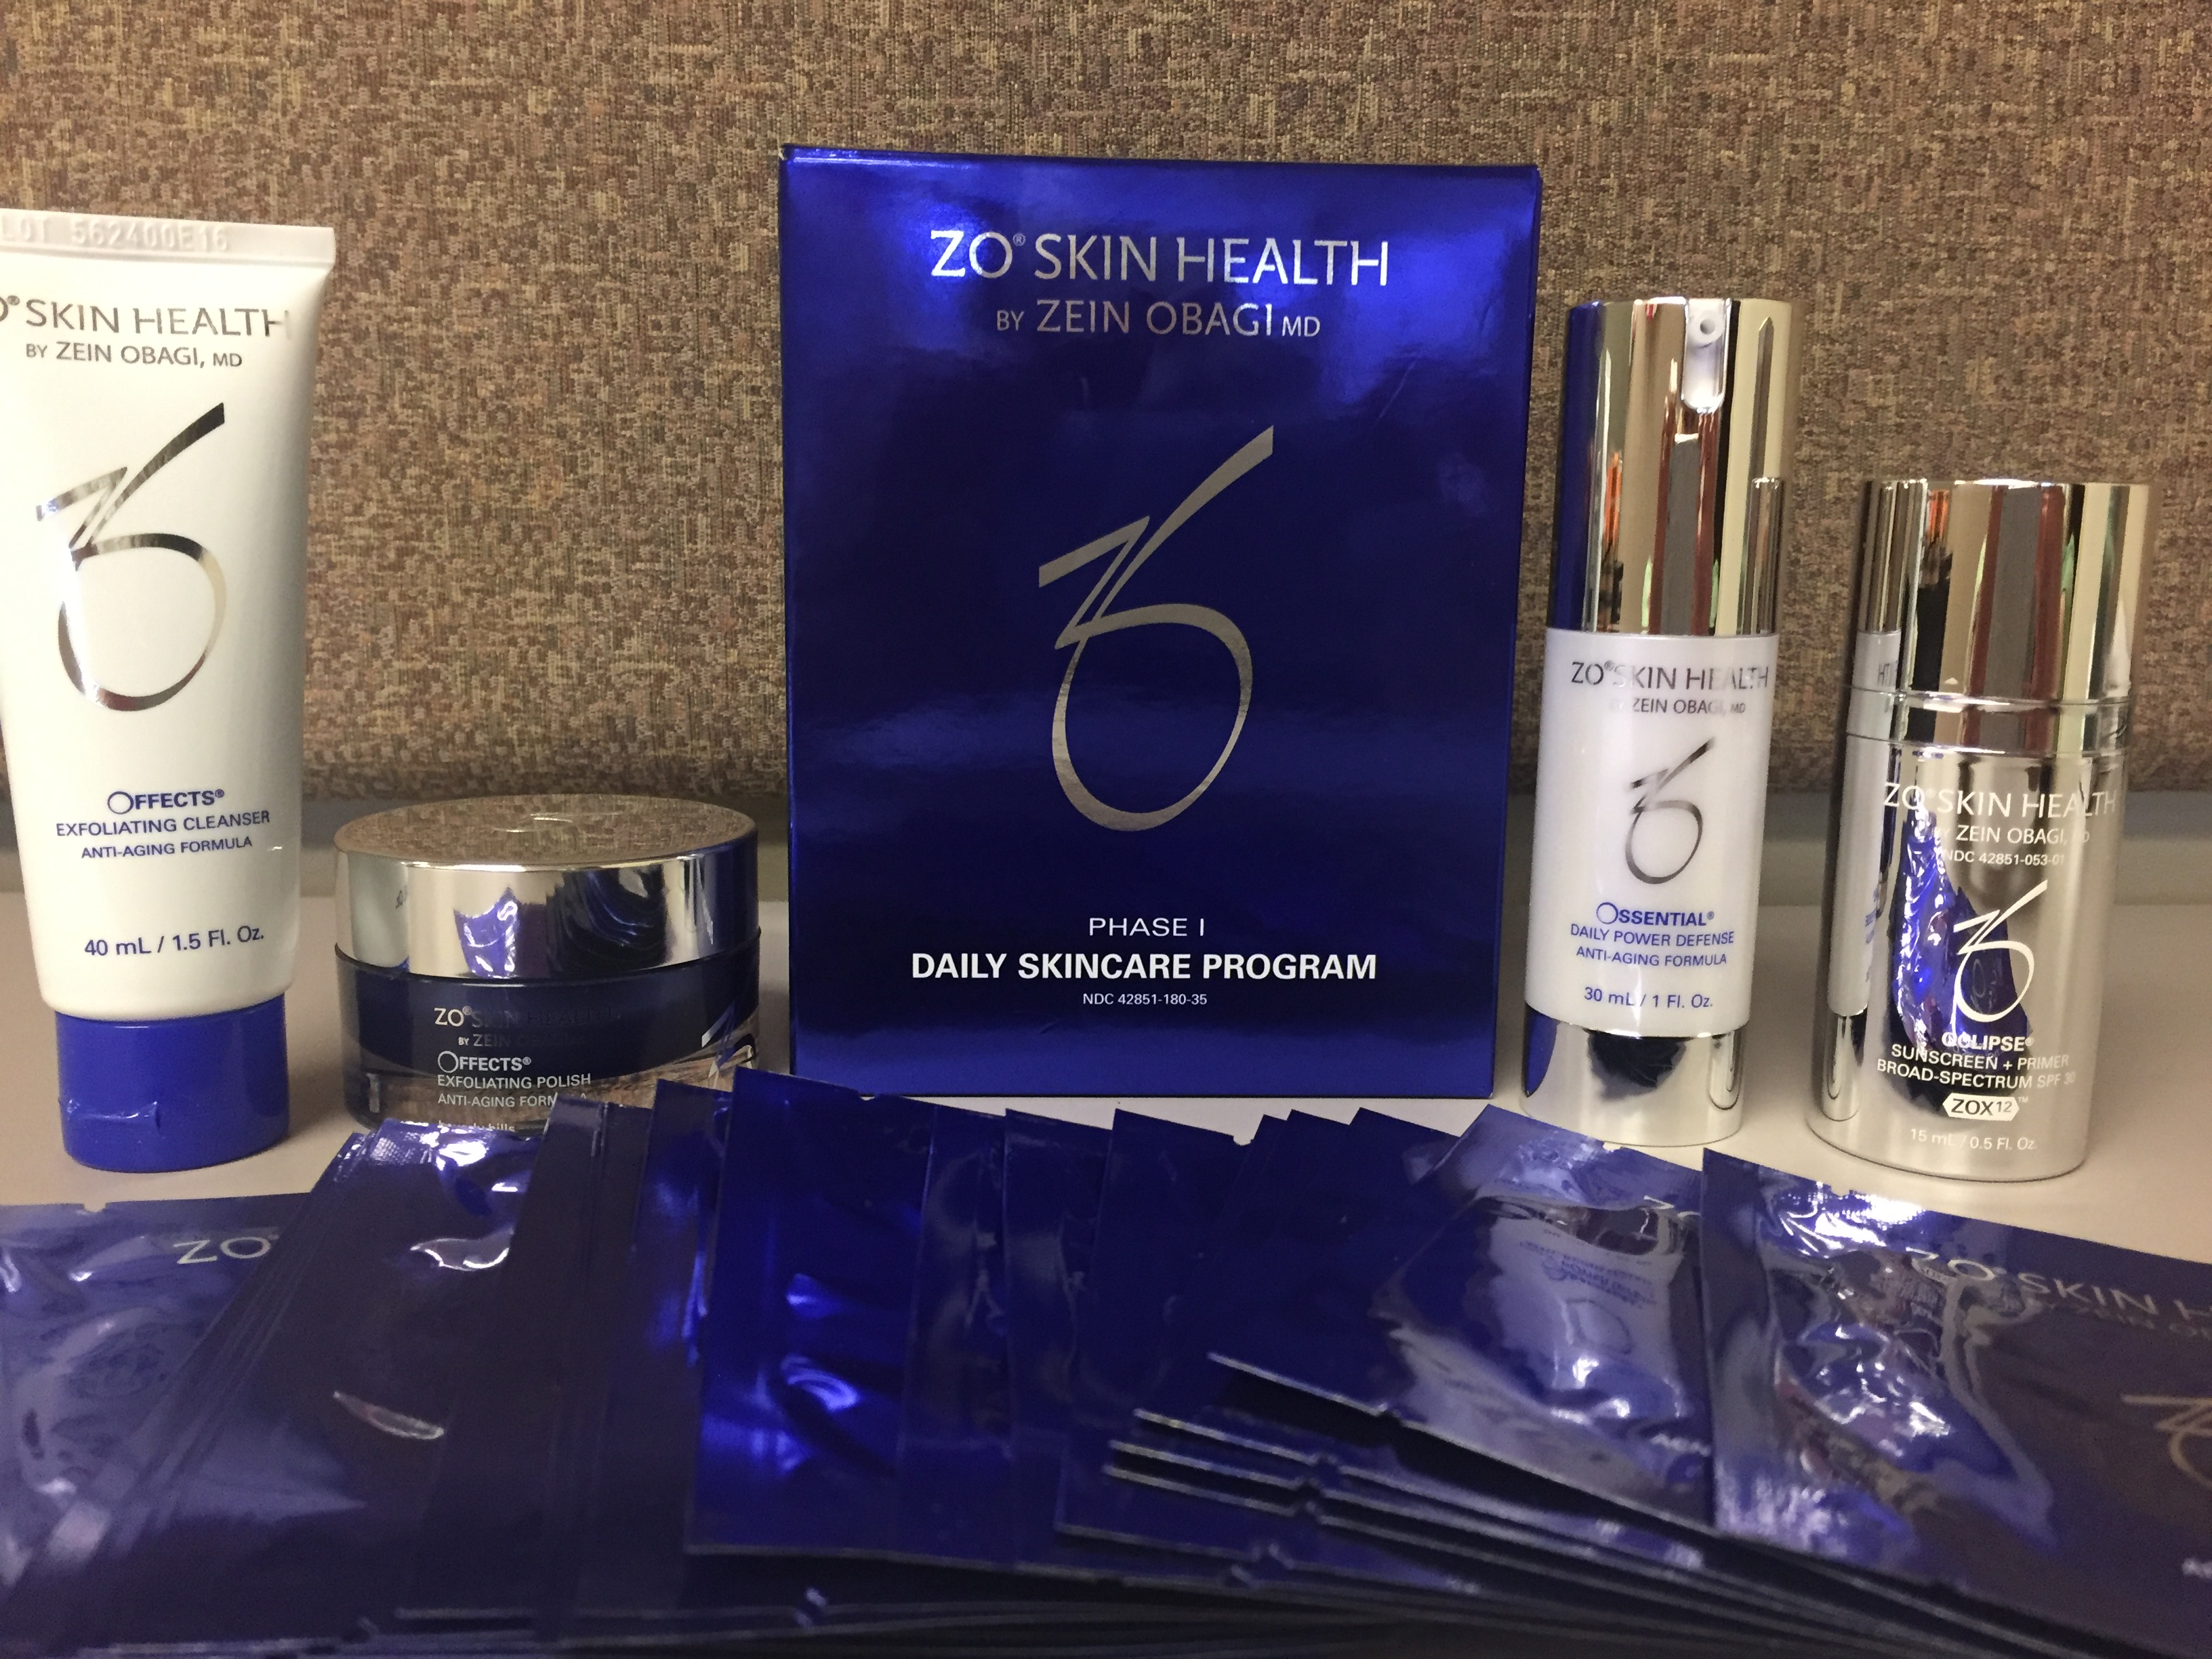 Zo Skin Health Daily Skincare Program Phase 1 Estimated Value 160 Strides 4 Sight